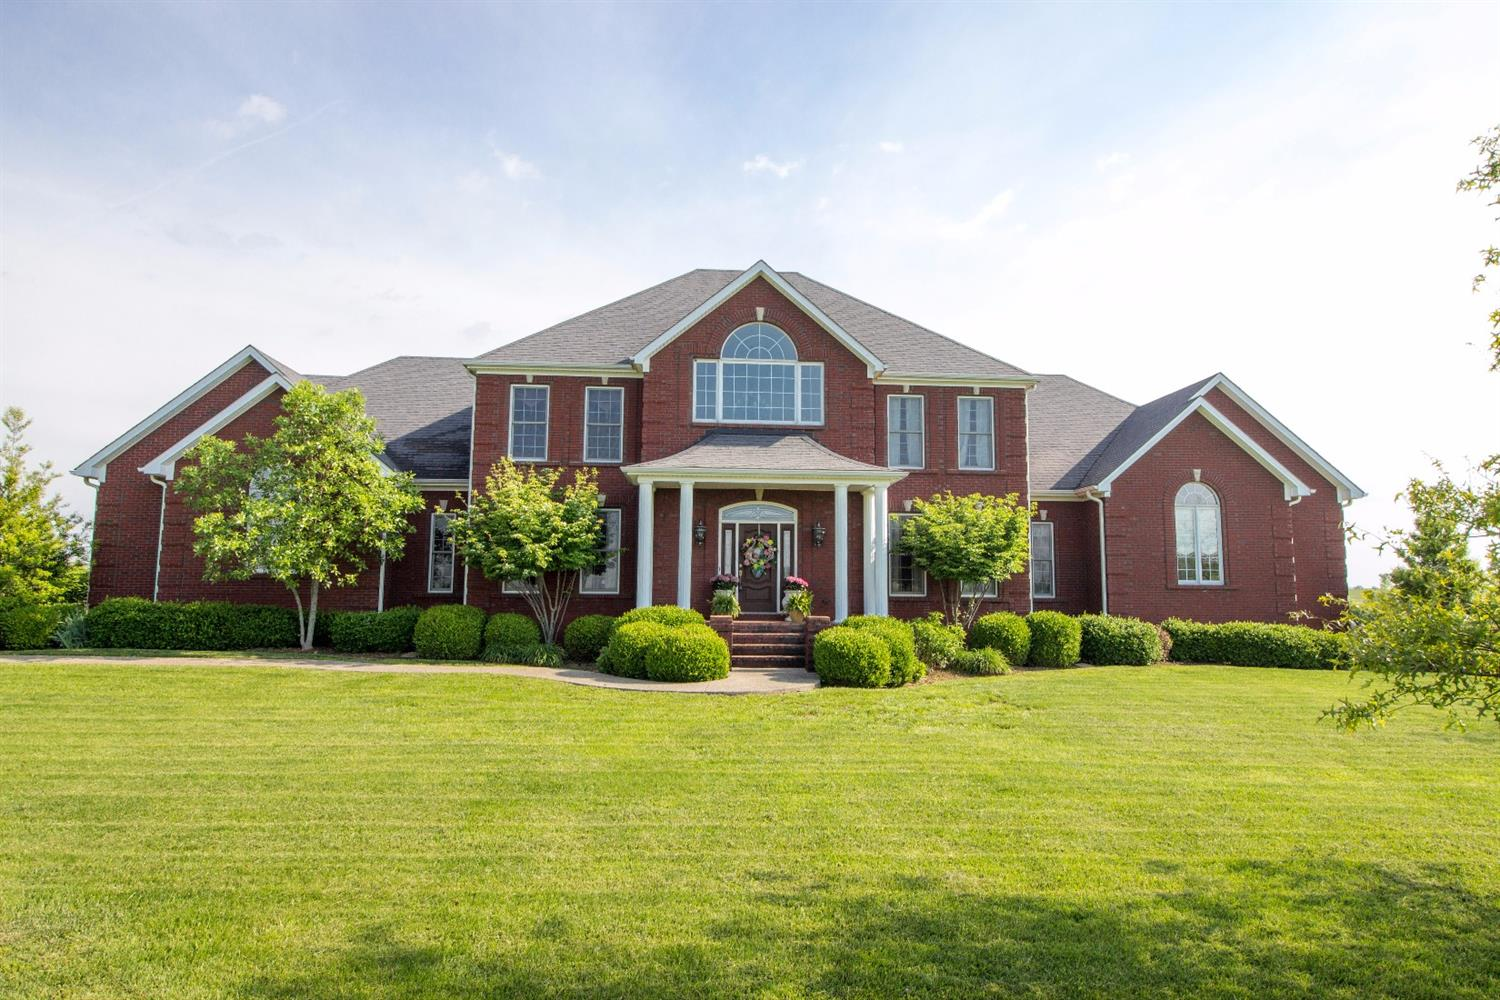 Homes For Sale in 4071 Perryville Rd, Danville, KY 40422 Subdivision